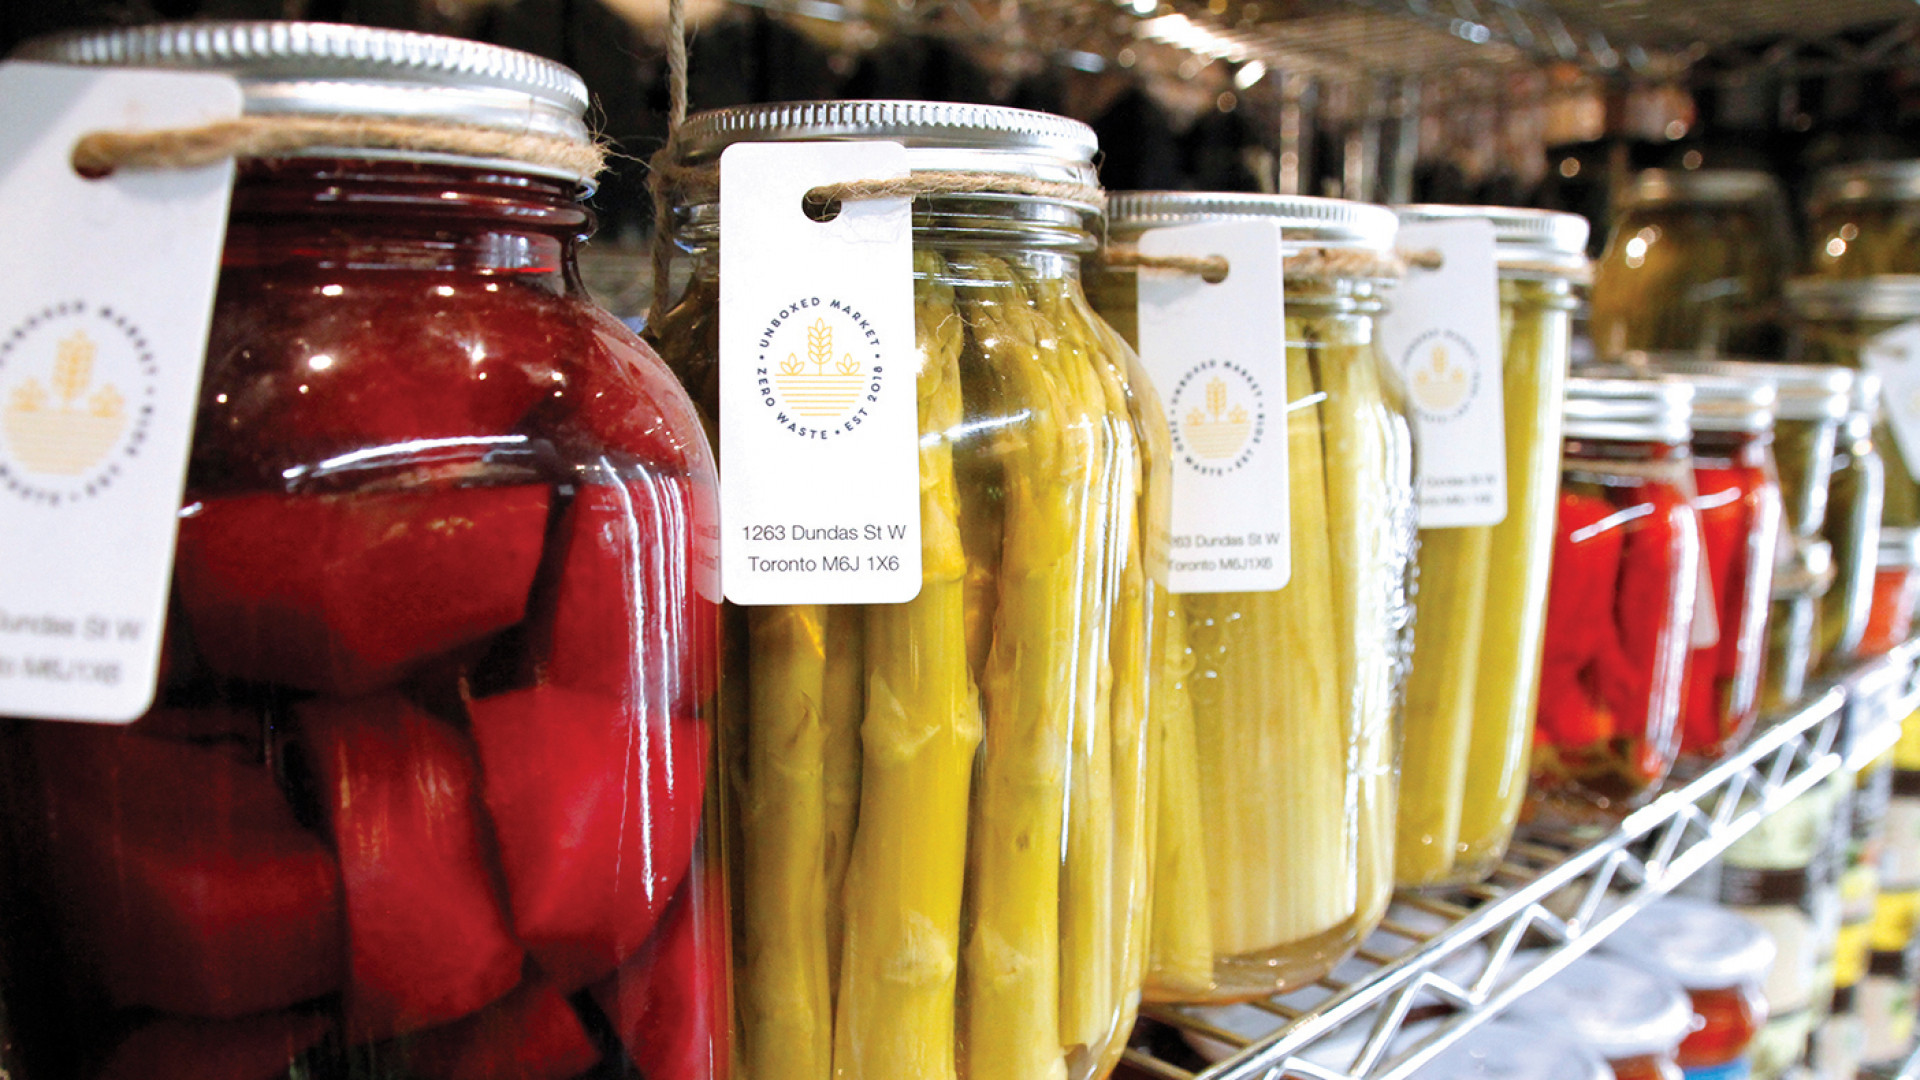 Things to do in Toronto | Preserves at Unboxed Market